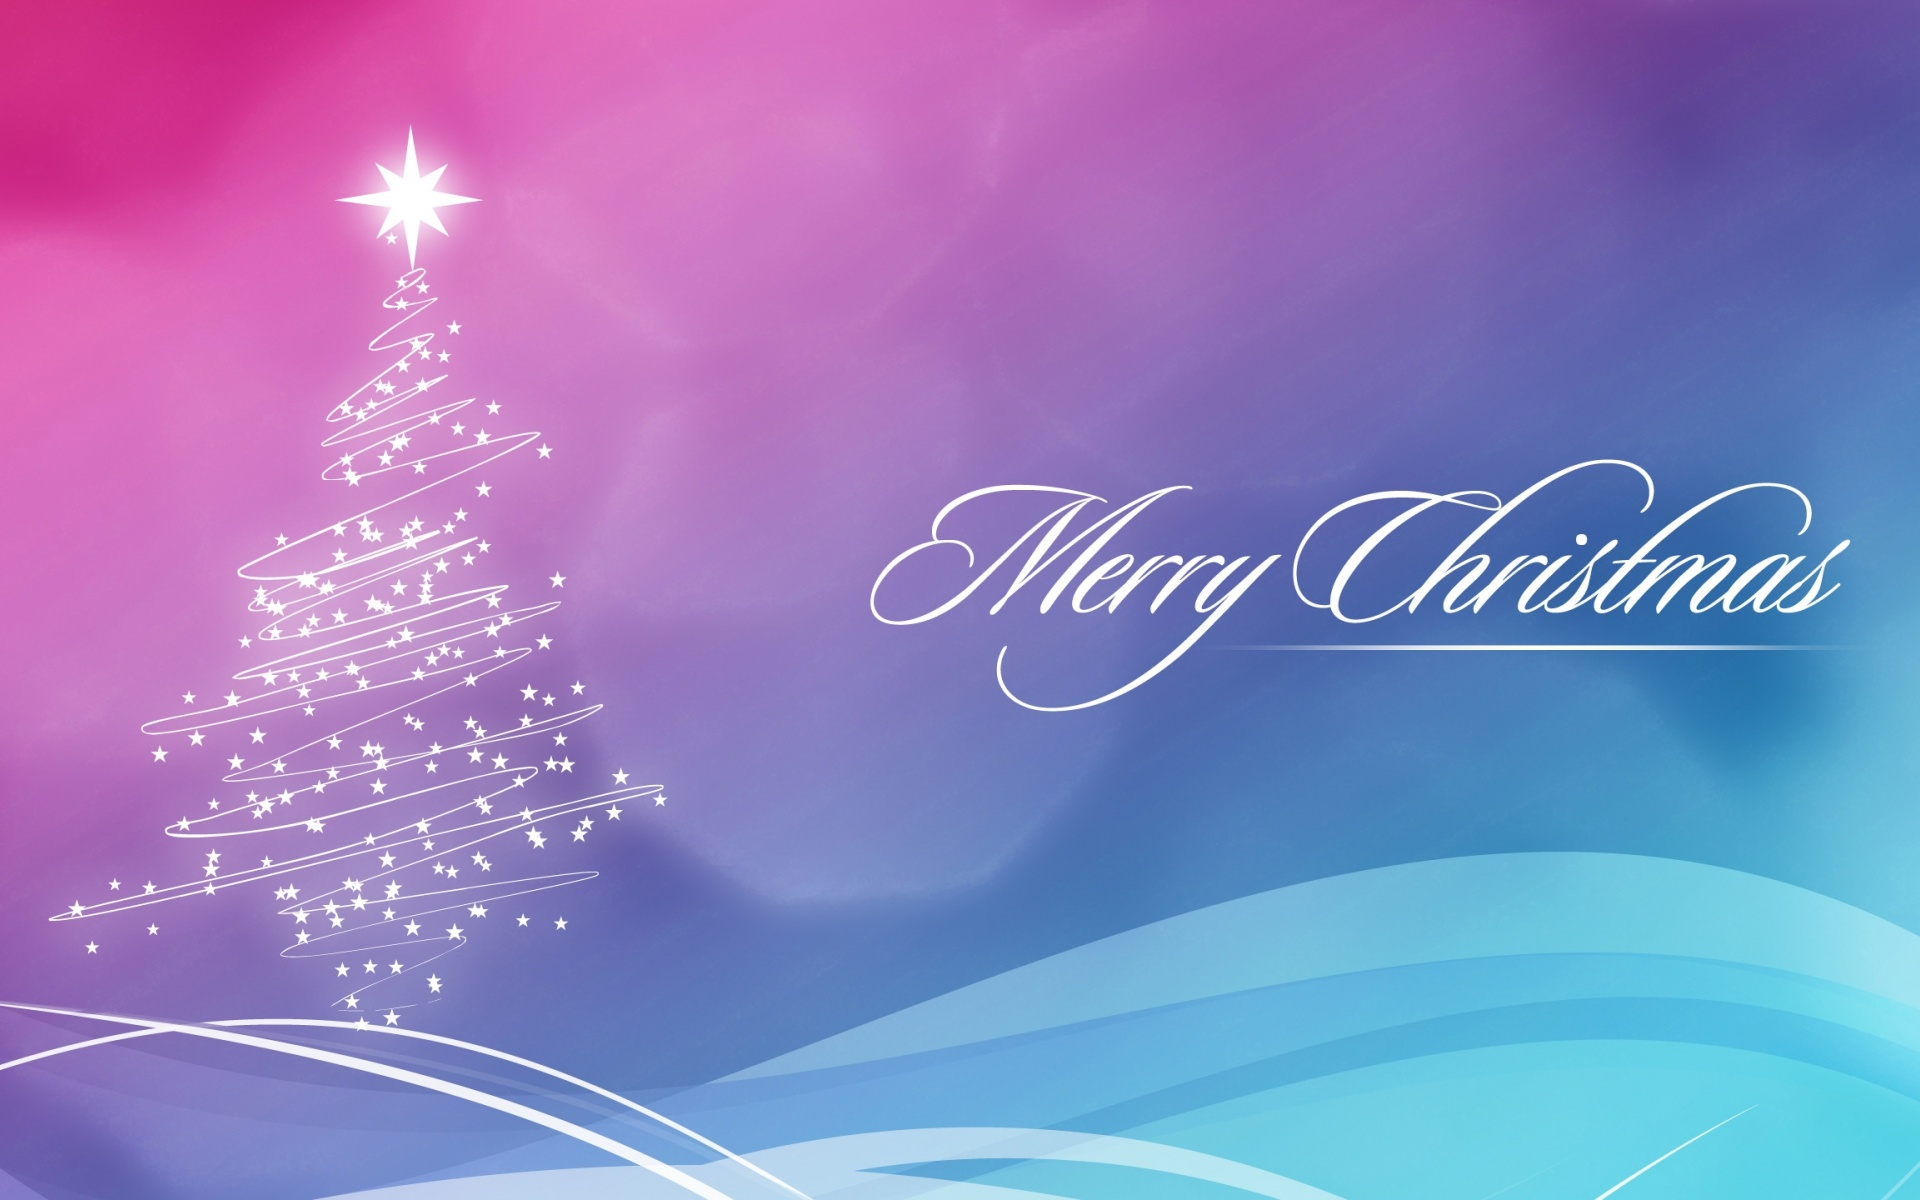 1920x1200 Christmas Greeting desktop PC and Mac wallpaper 1920x1200